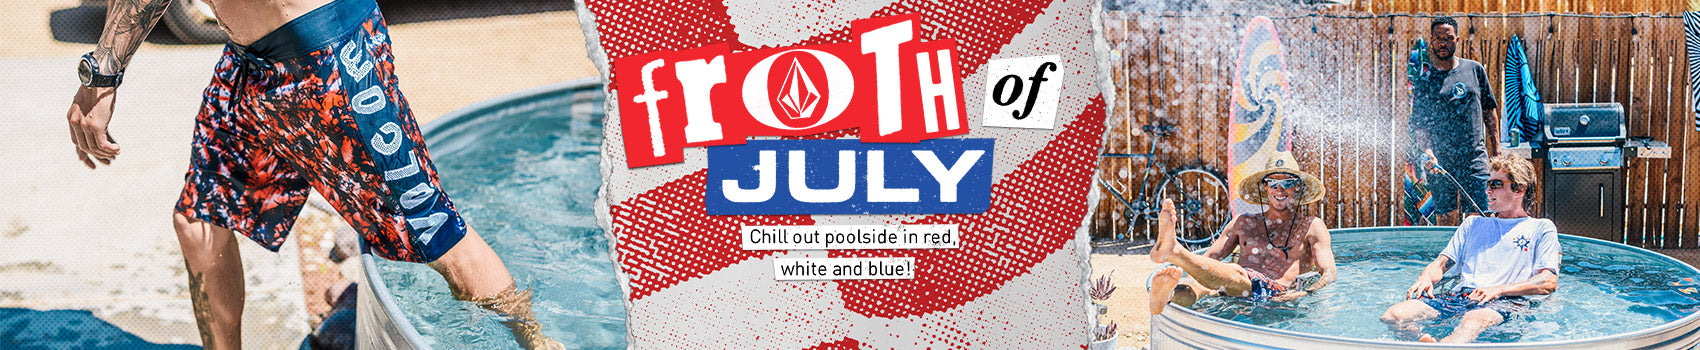 Froth of July